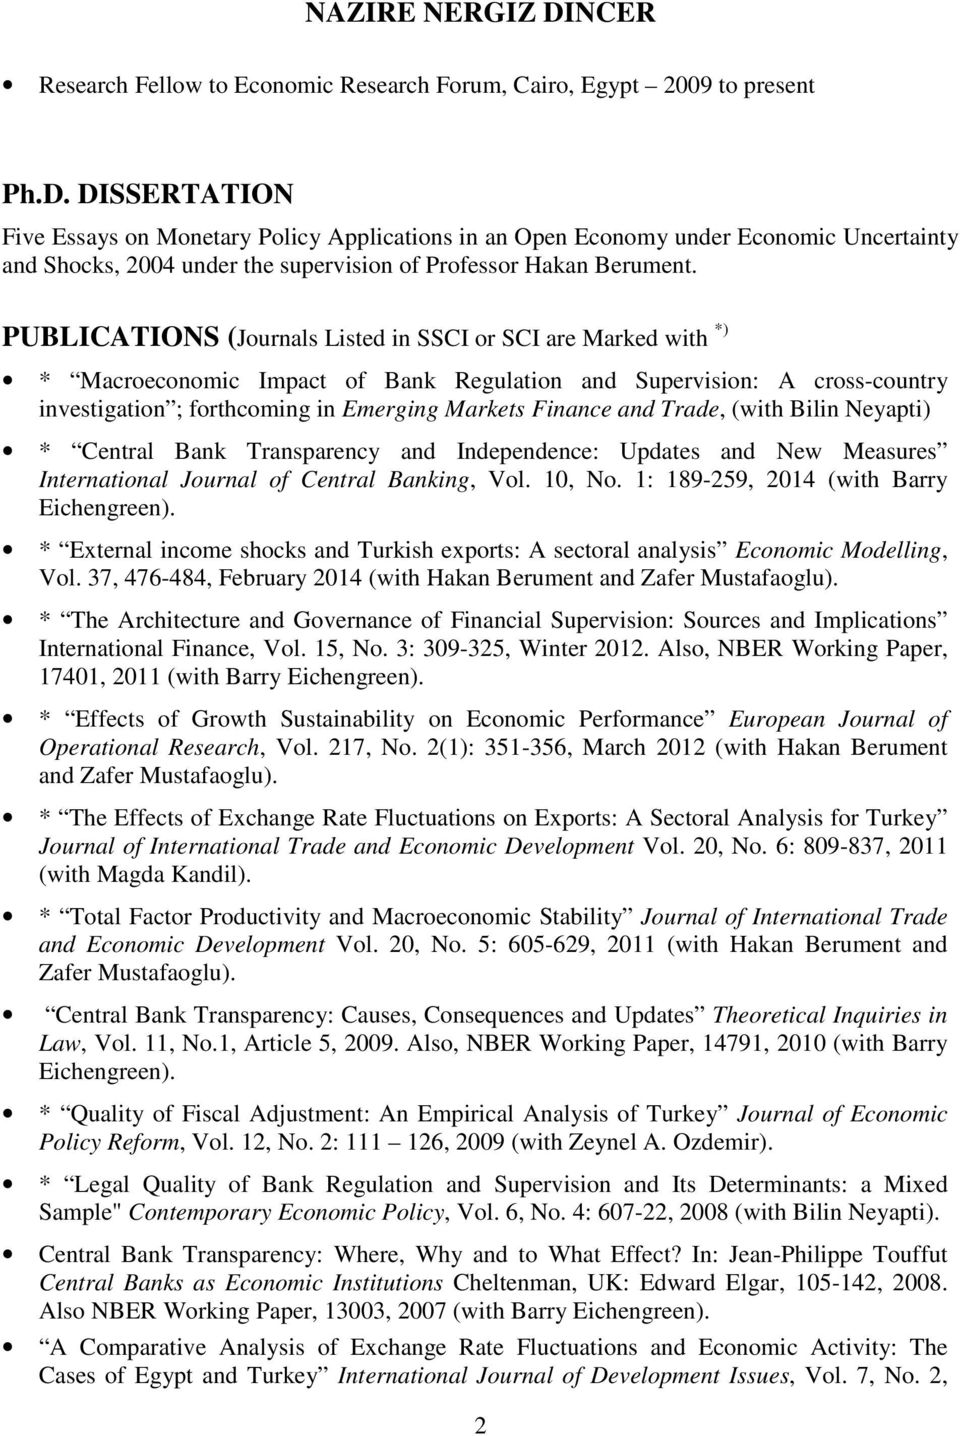 PUBLICATIONS (Journals Listed in SSCI or SCI are Marked with *) * Macroeconomic Impact of Bank Regulation and Supervision: A cross-country investigation ; forthcoming in Emerging Markets Finance and